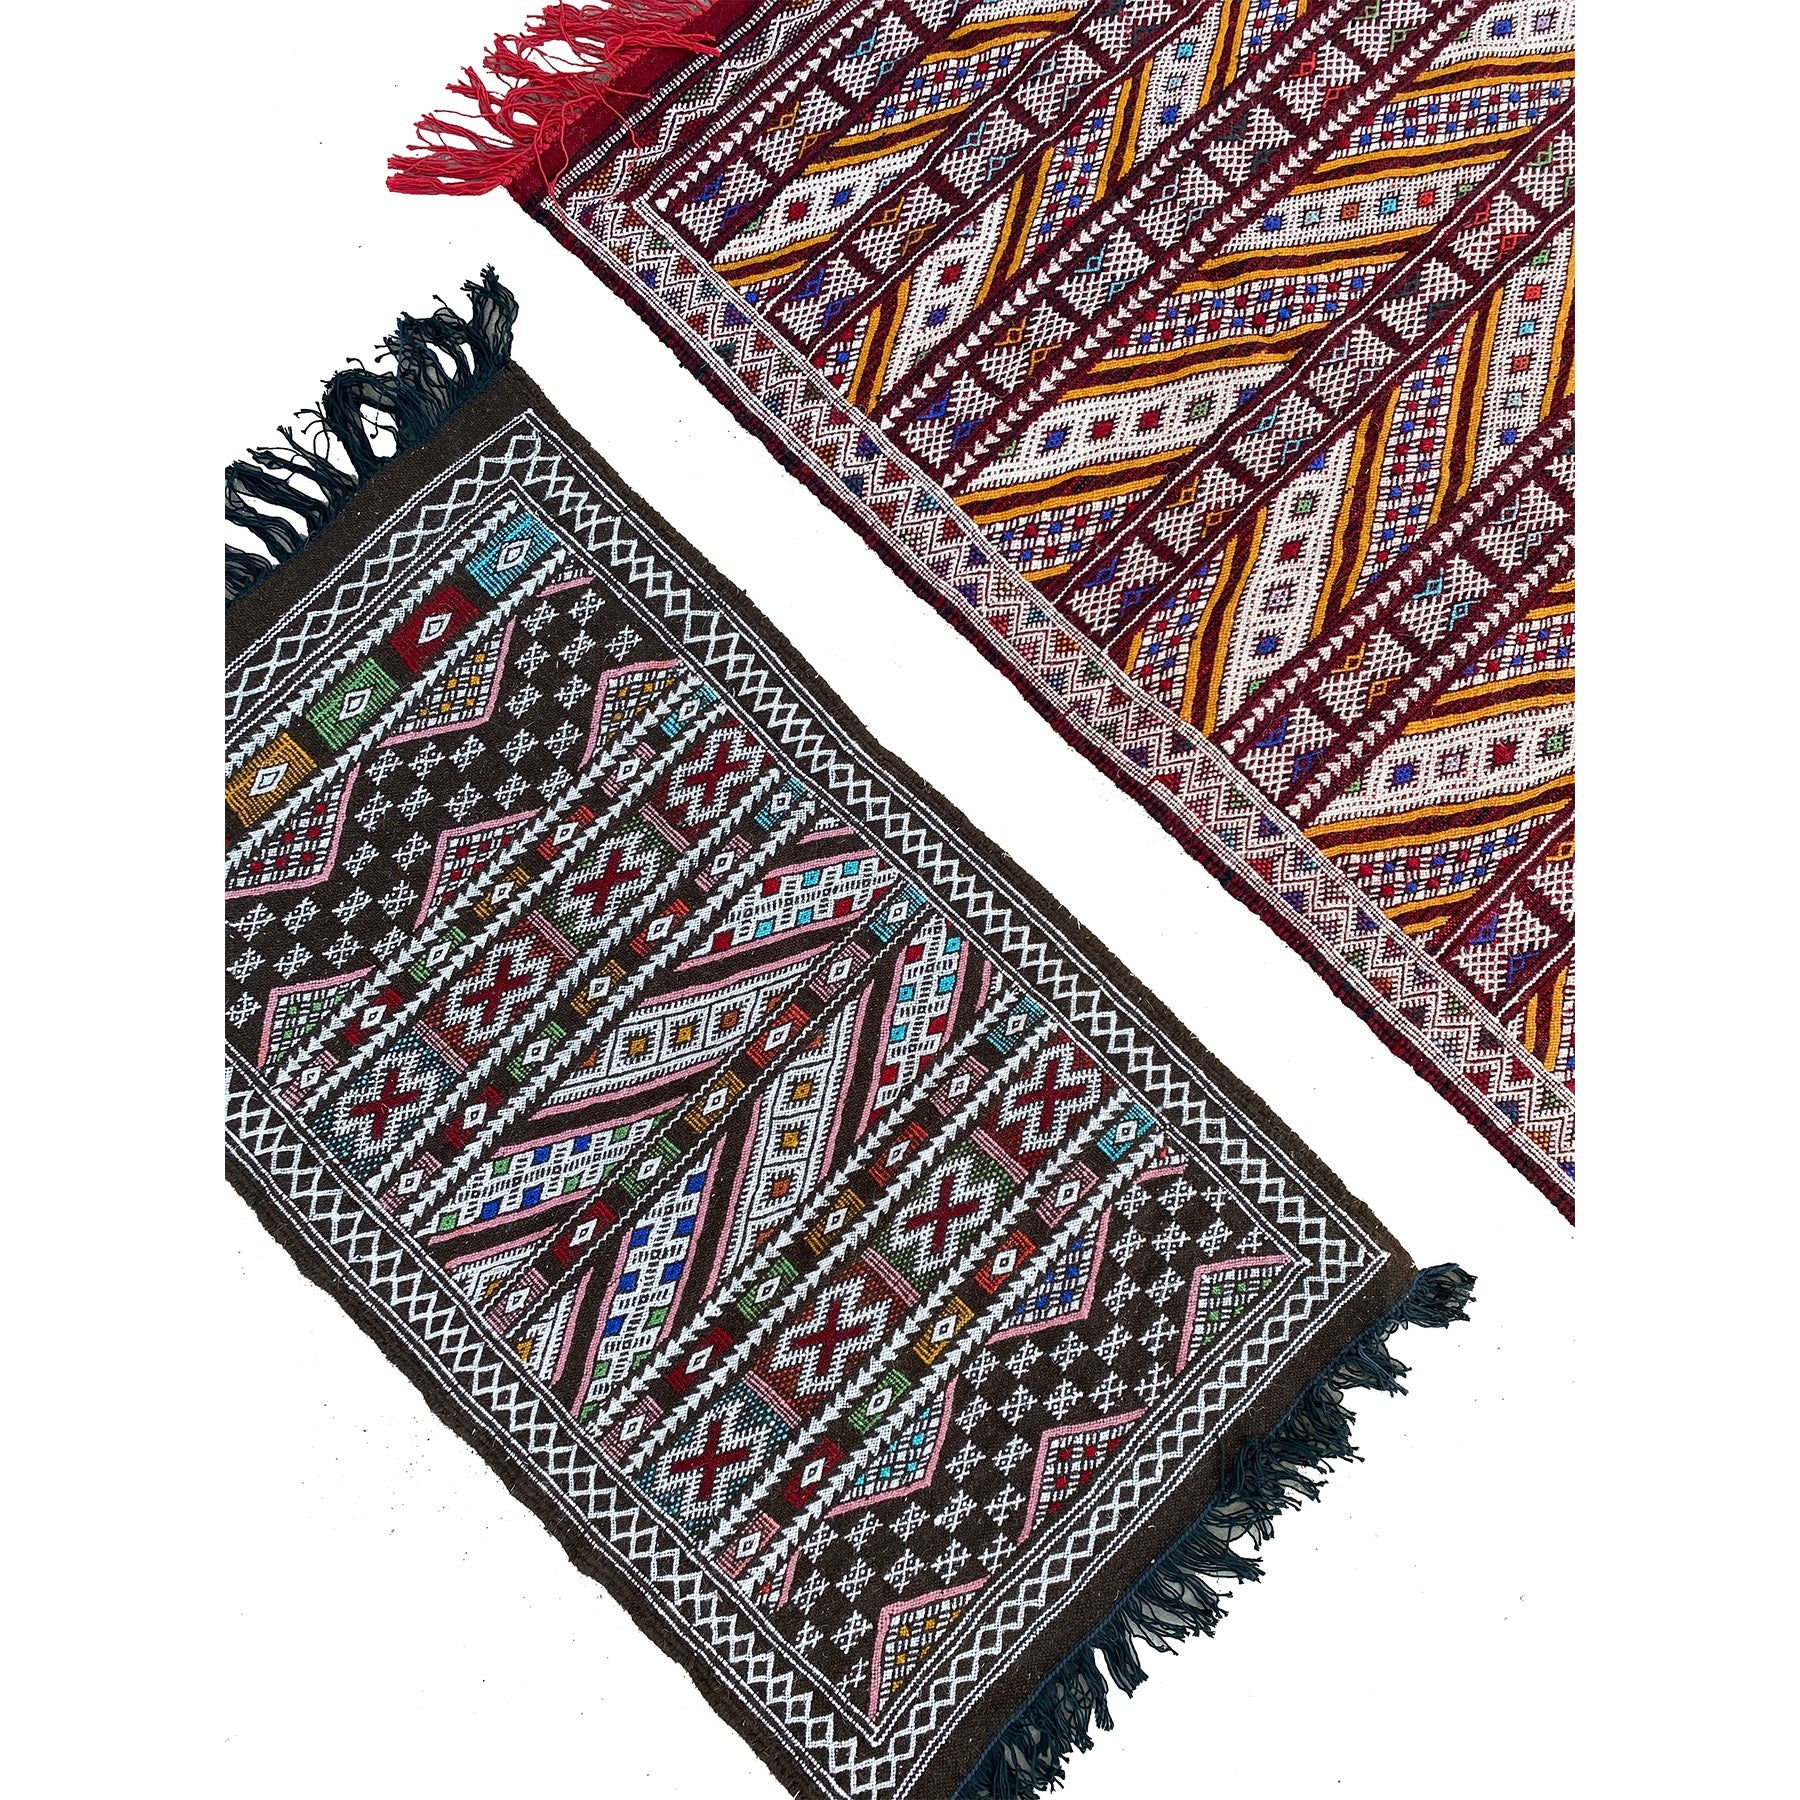 Colorful authentic Moroccan flatweave kilim rugs - Kantara | Moroccan Rugs